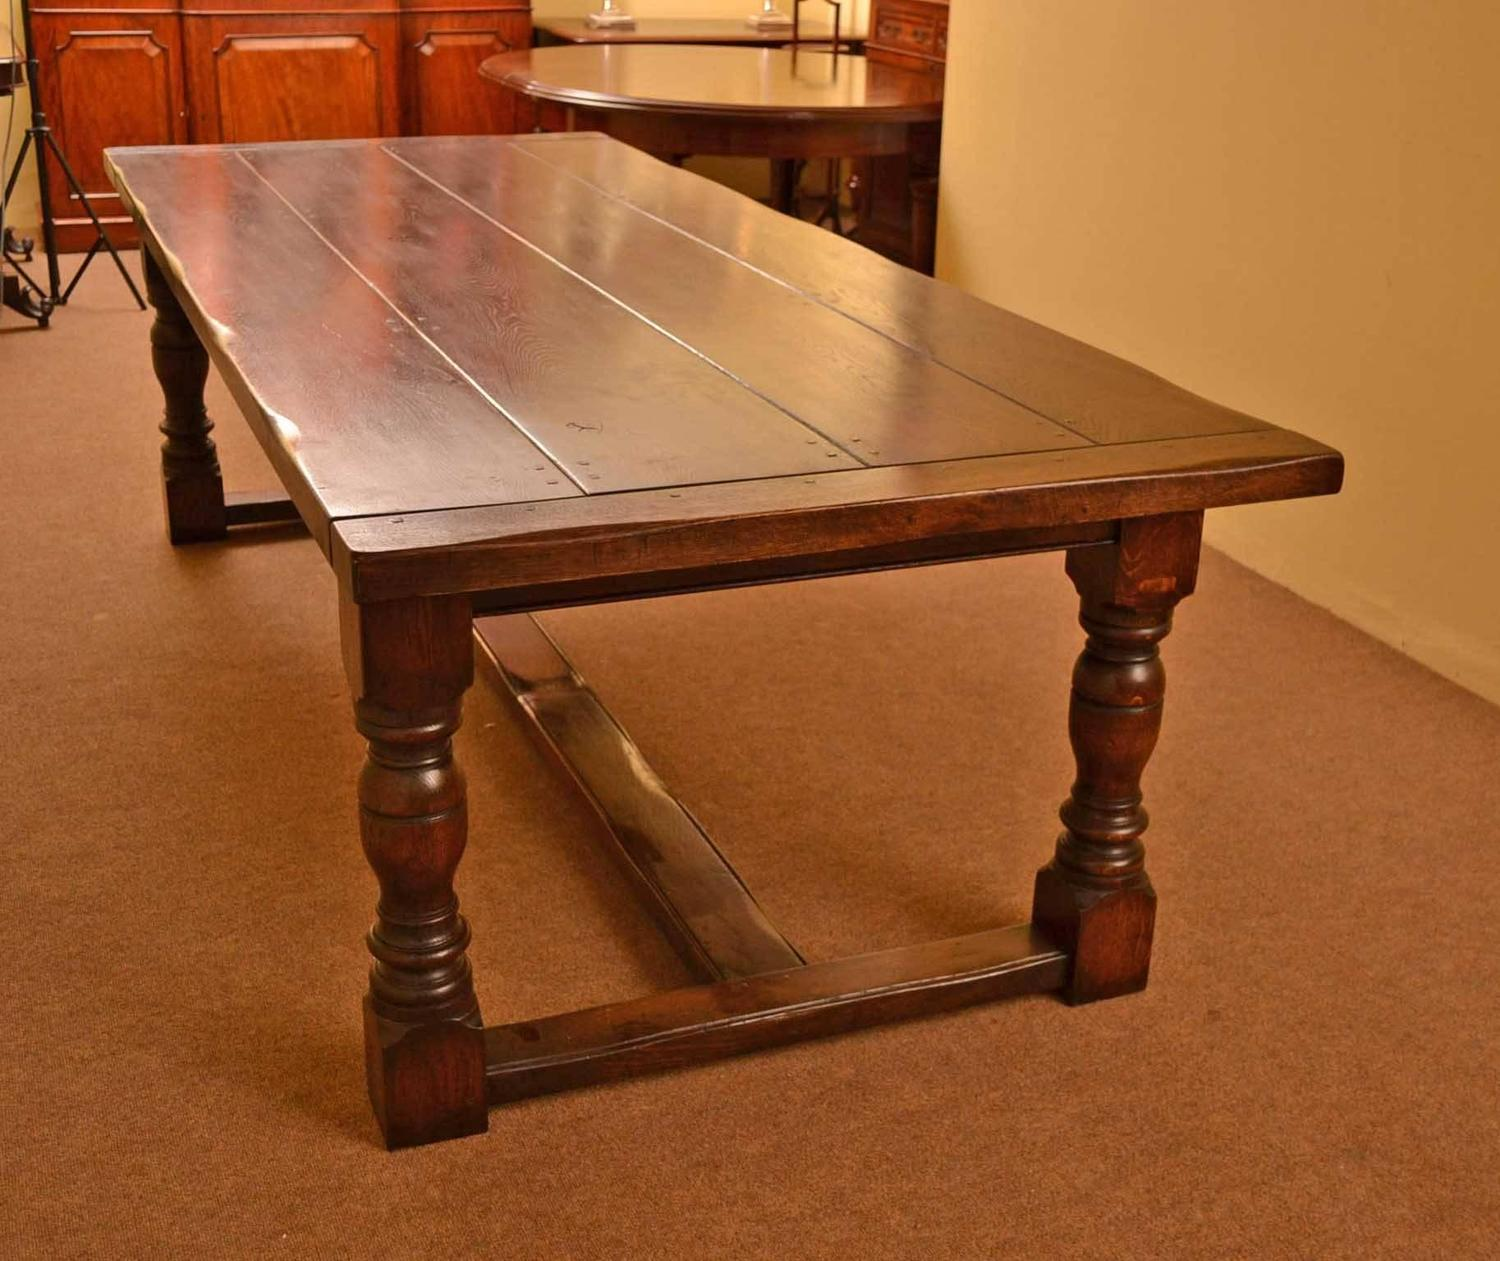 English Solid Oak Refectory Dining Table For Sale At 1stdibs